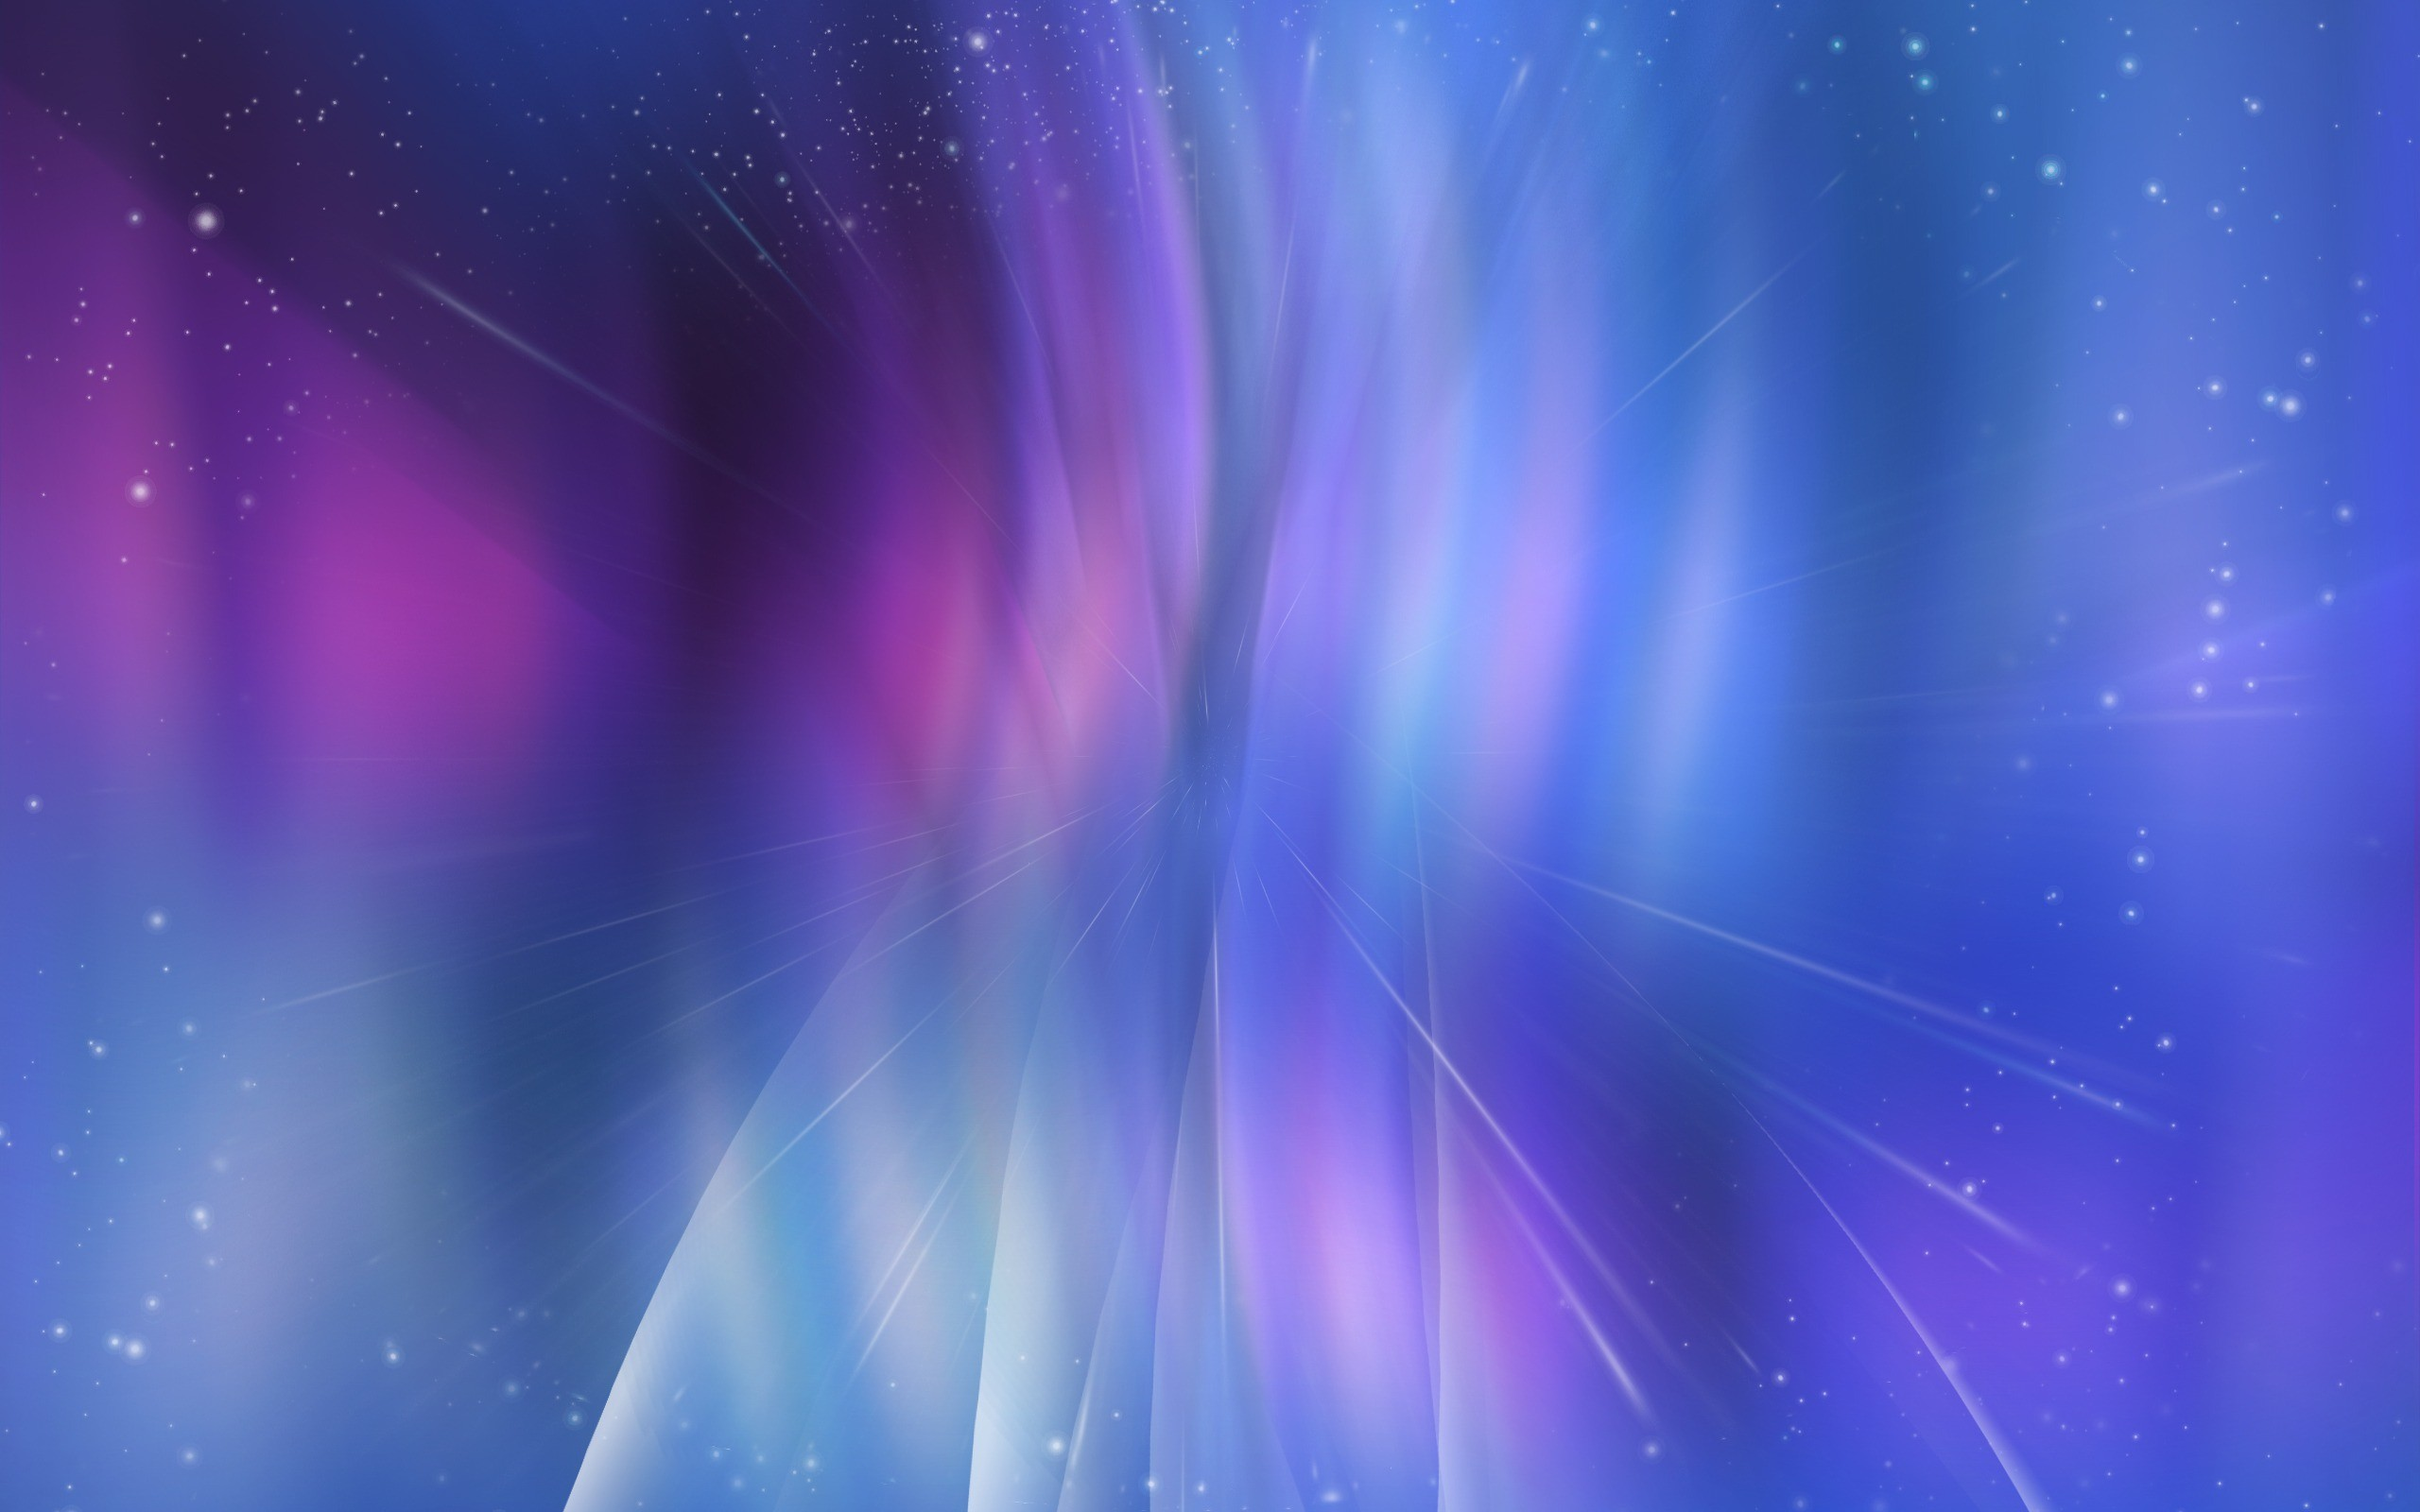 Purple Abstract Epicenter desktop wallpaper. Pink Purple And Blue  Backgrounds WallpaperSafari